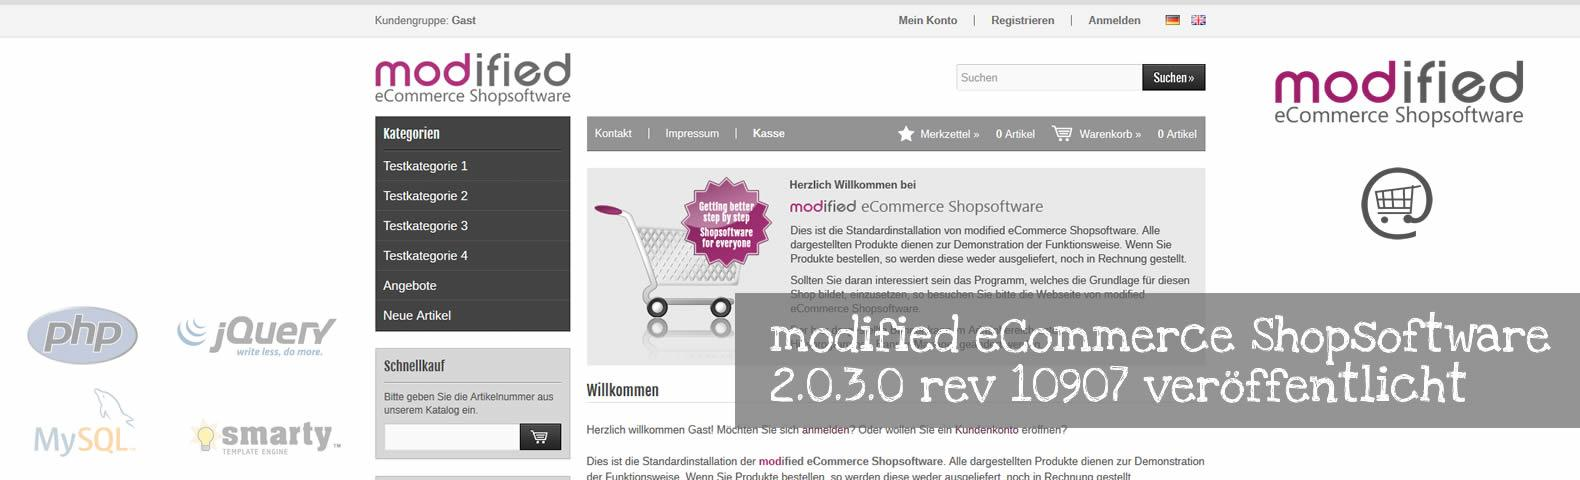 modified eCommerce Shopsoftware 2.0.3.0 rev 10907 veröffentlicht